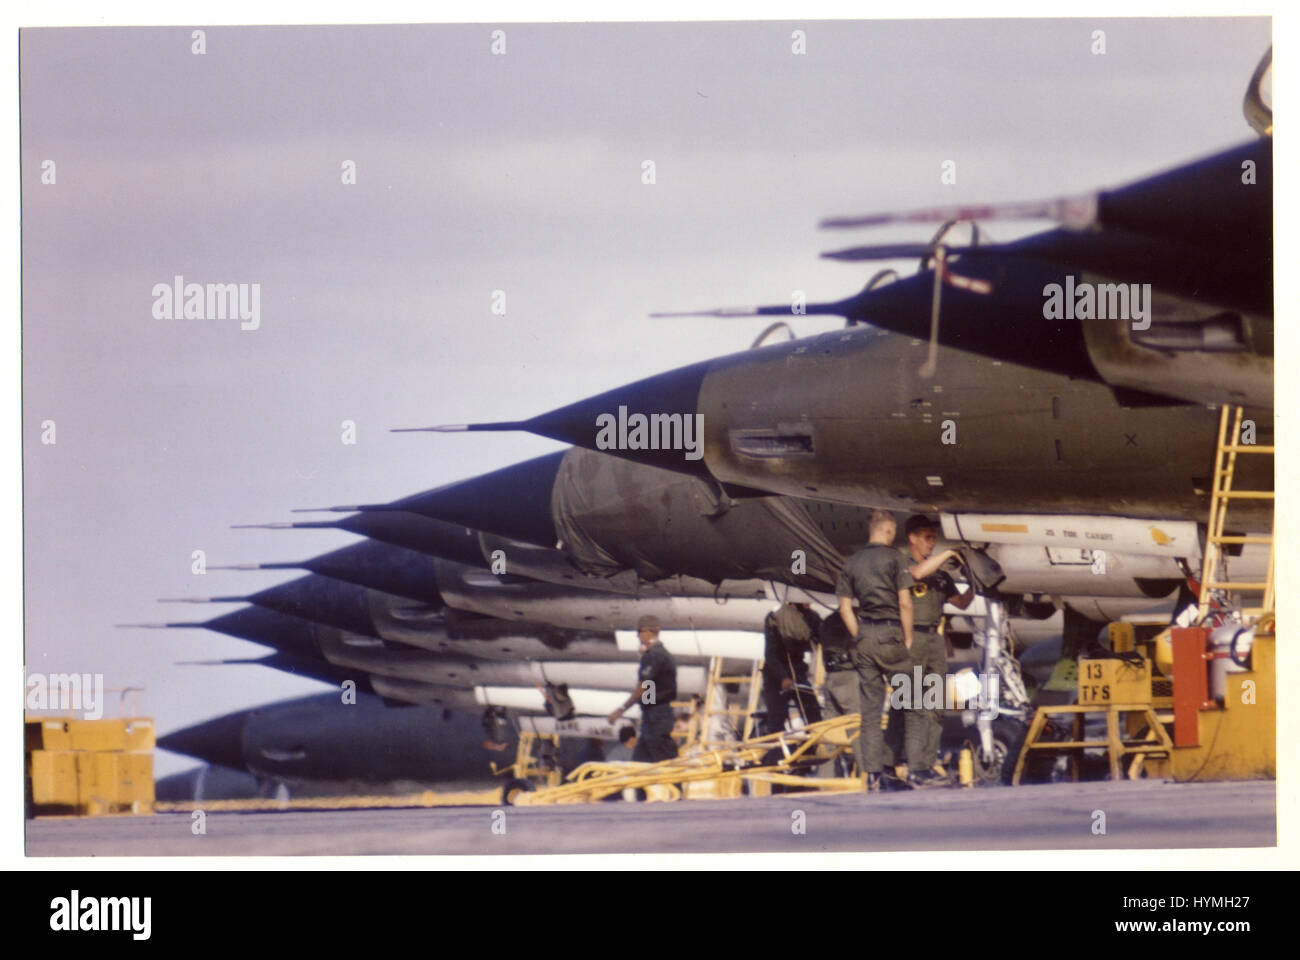 F-100s on a flight line at Takhli Air Base, Thailand, 1966. - Stock Image